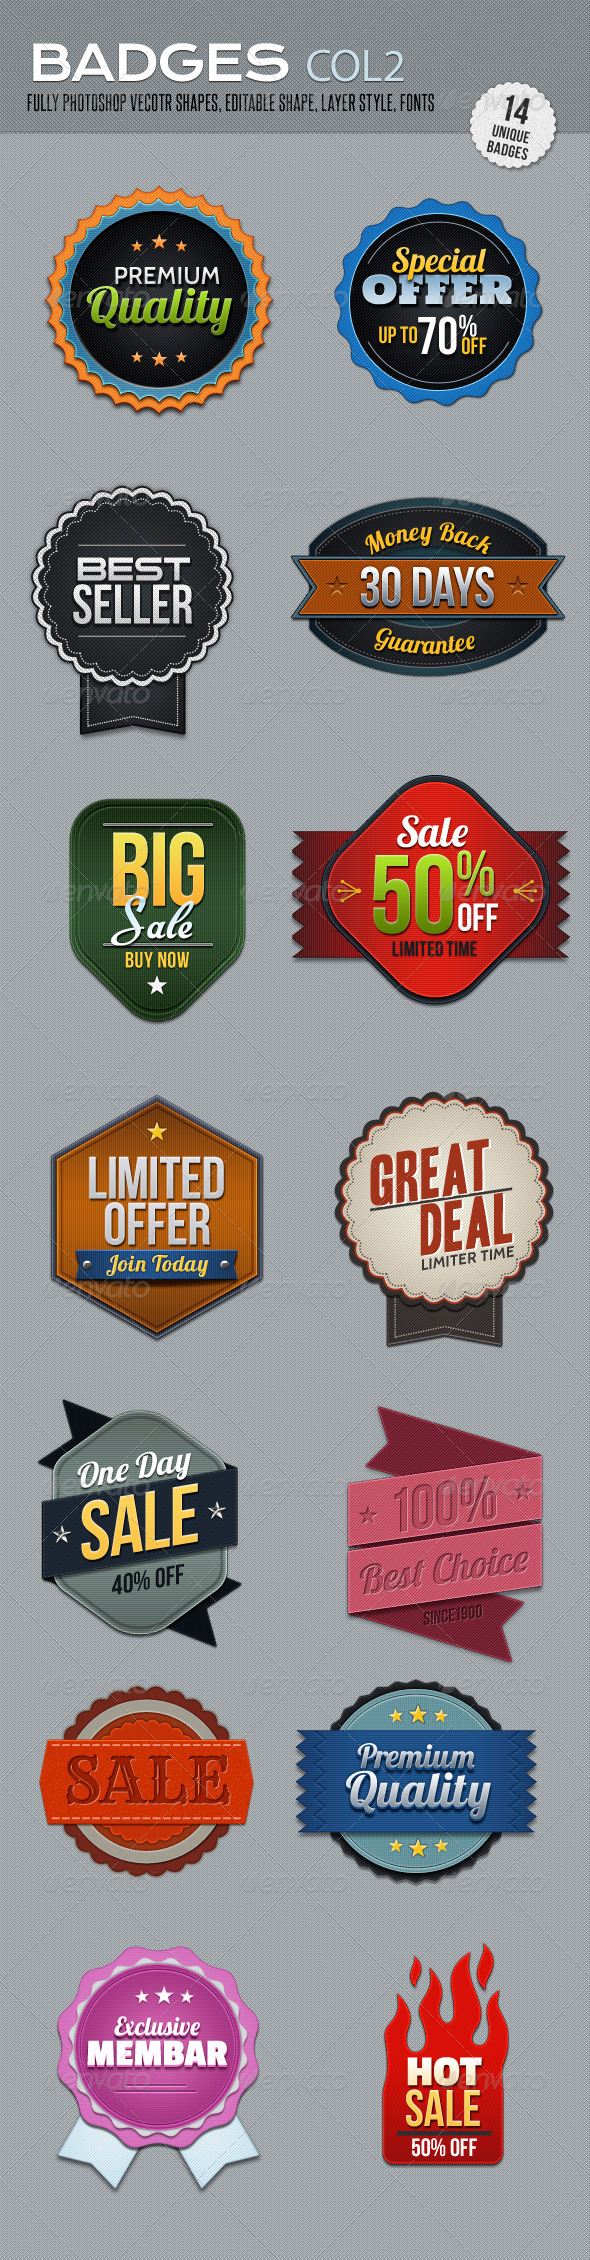 Badges col 2 - Badges & Stickers Web Elements